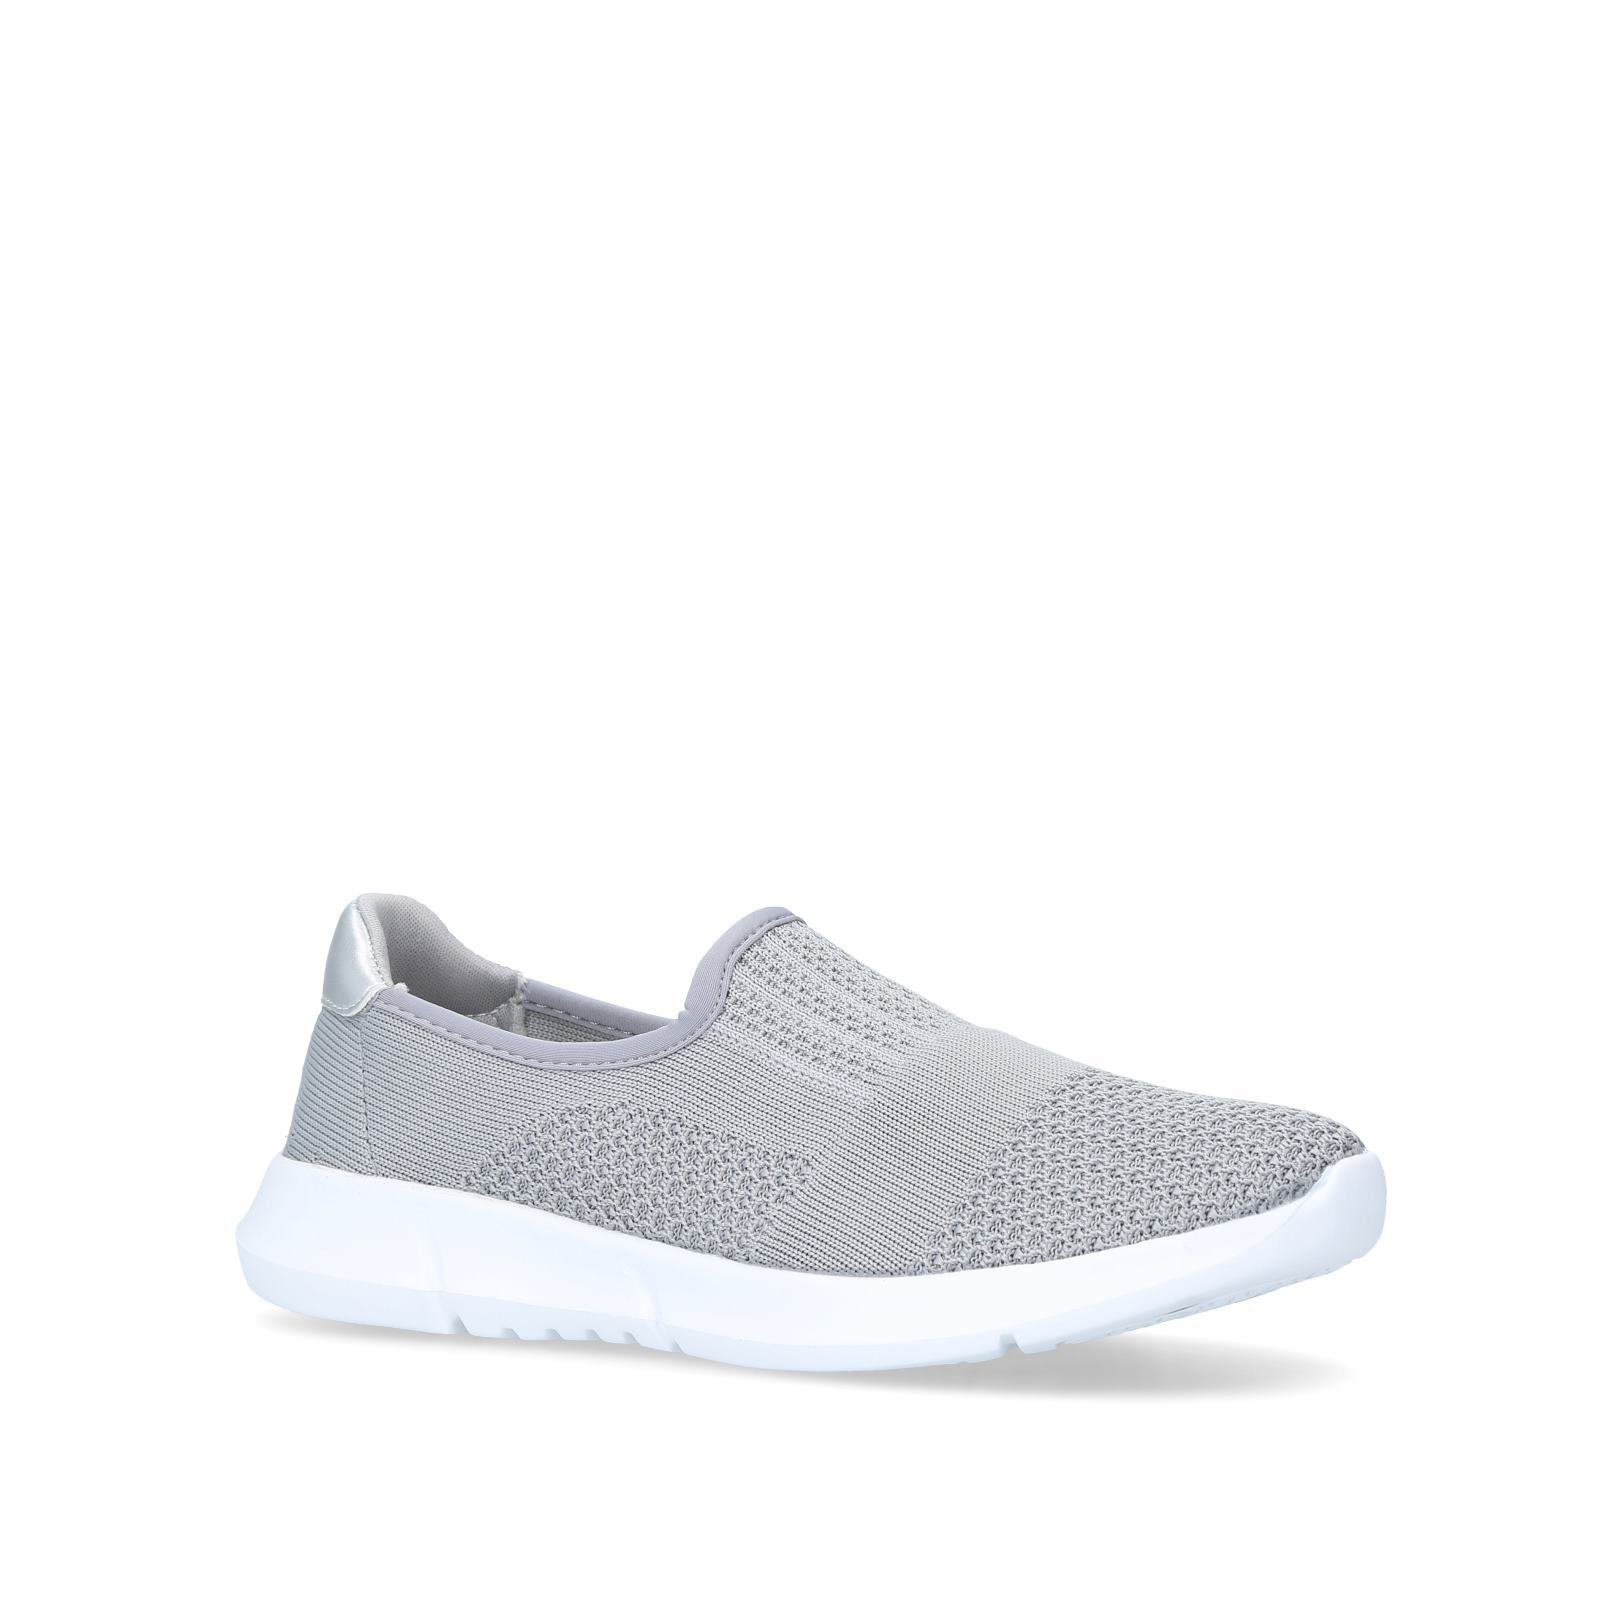 Carvela Comfort Carly Trainers, Grey